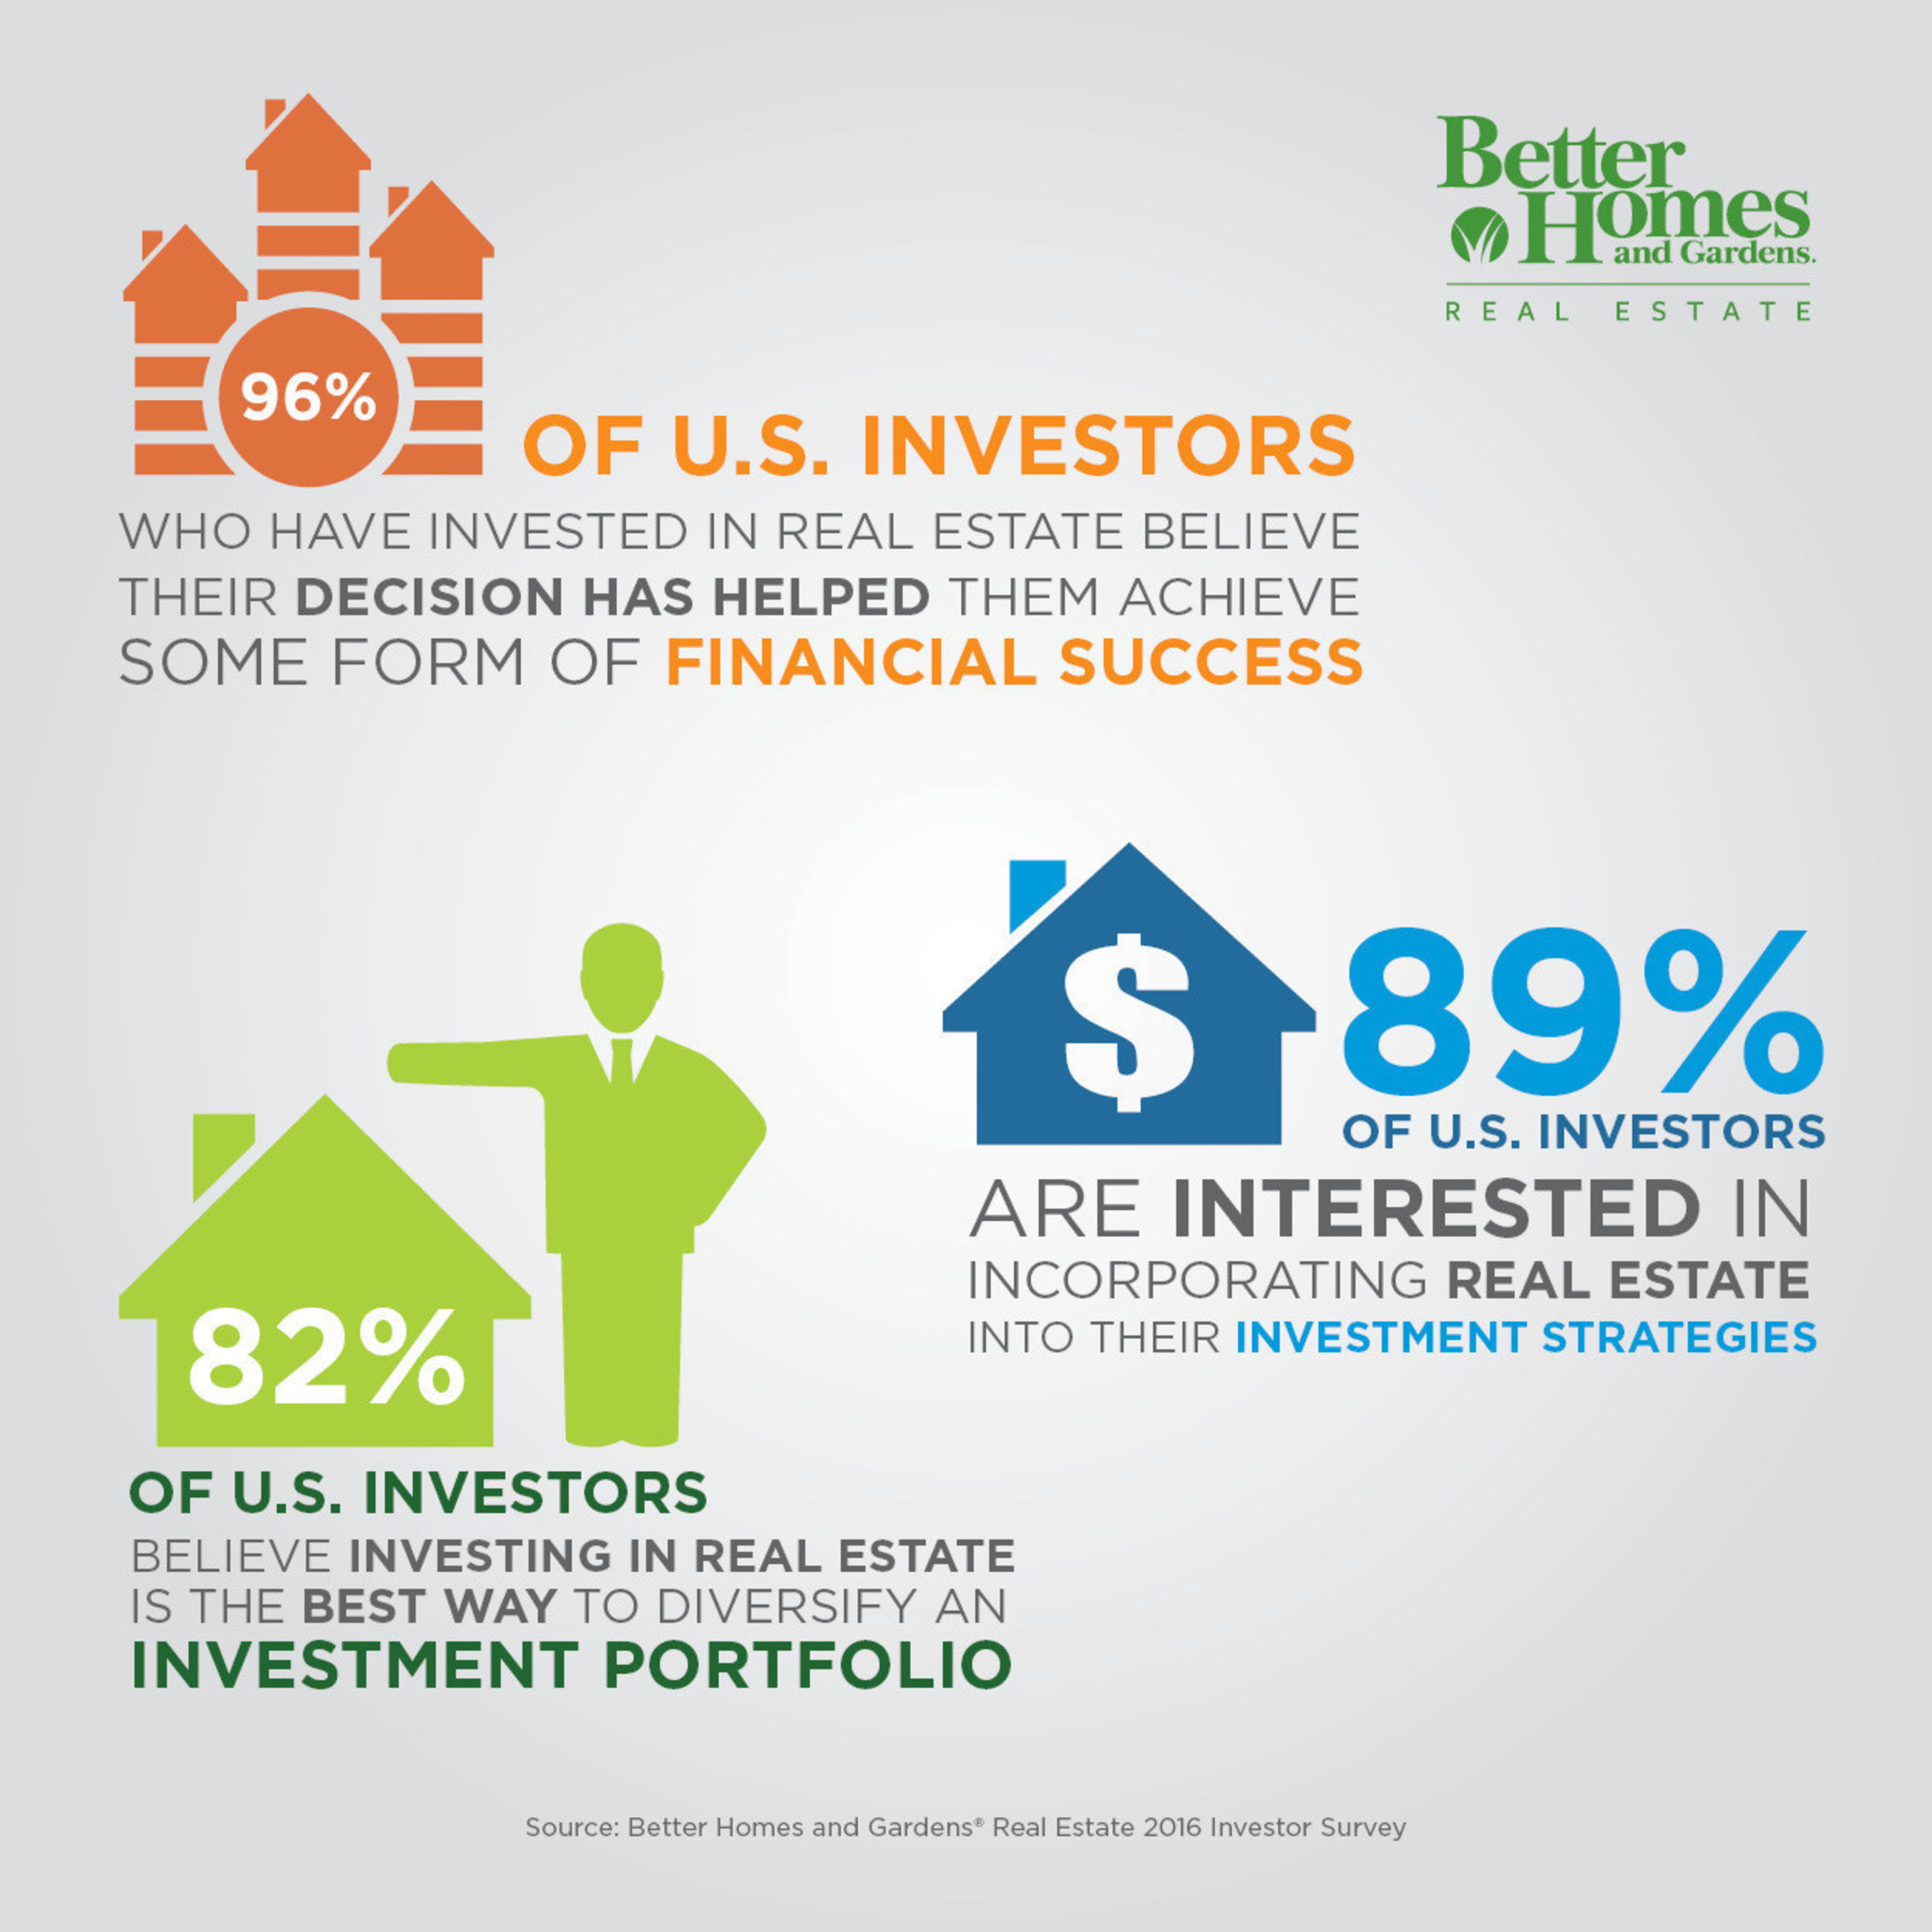 Real Estate Seen As Viable Investment Strategy According To New Consumer  Survey By Better Homes And